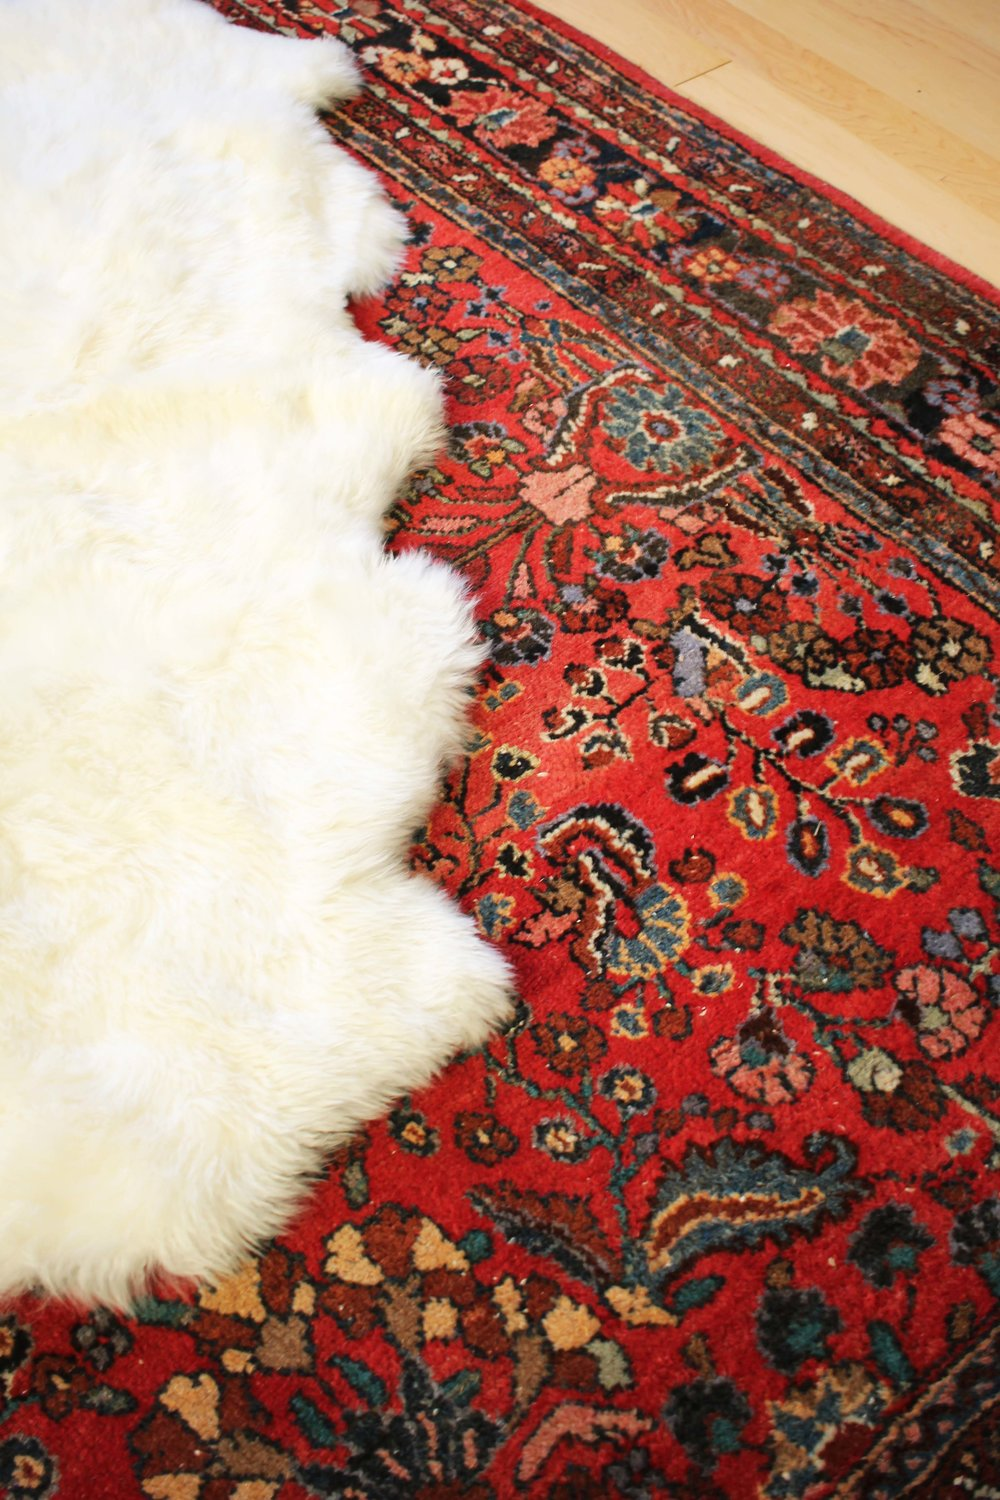 A little peek at Karen's New Oriental Rug